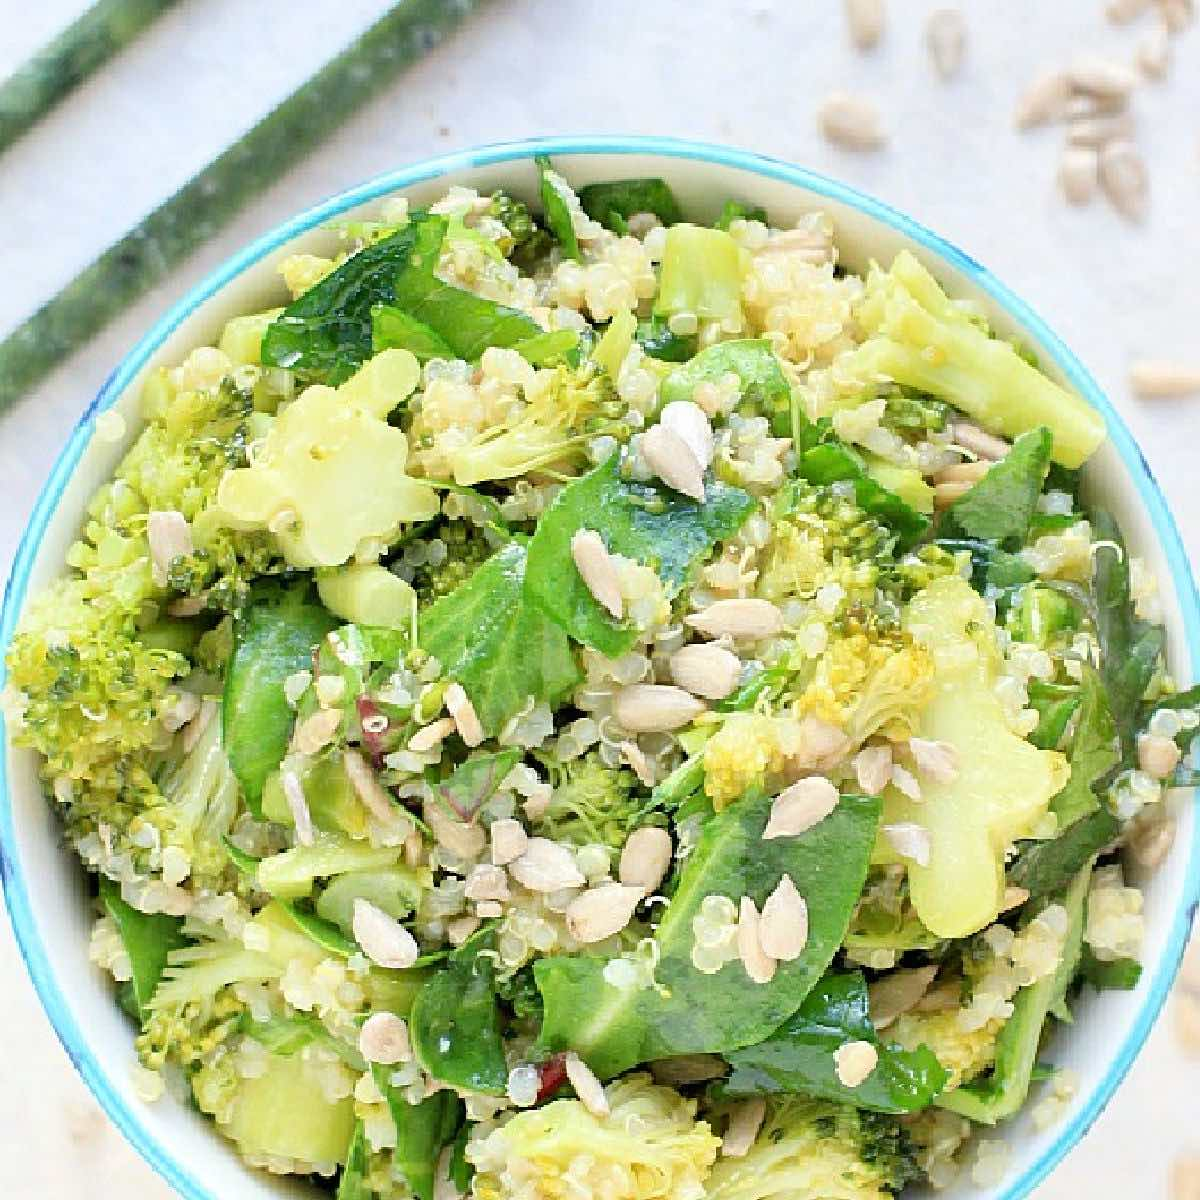 Bowl of miso broccoli quinoa salad with greens.